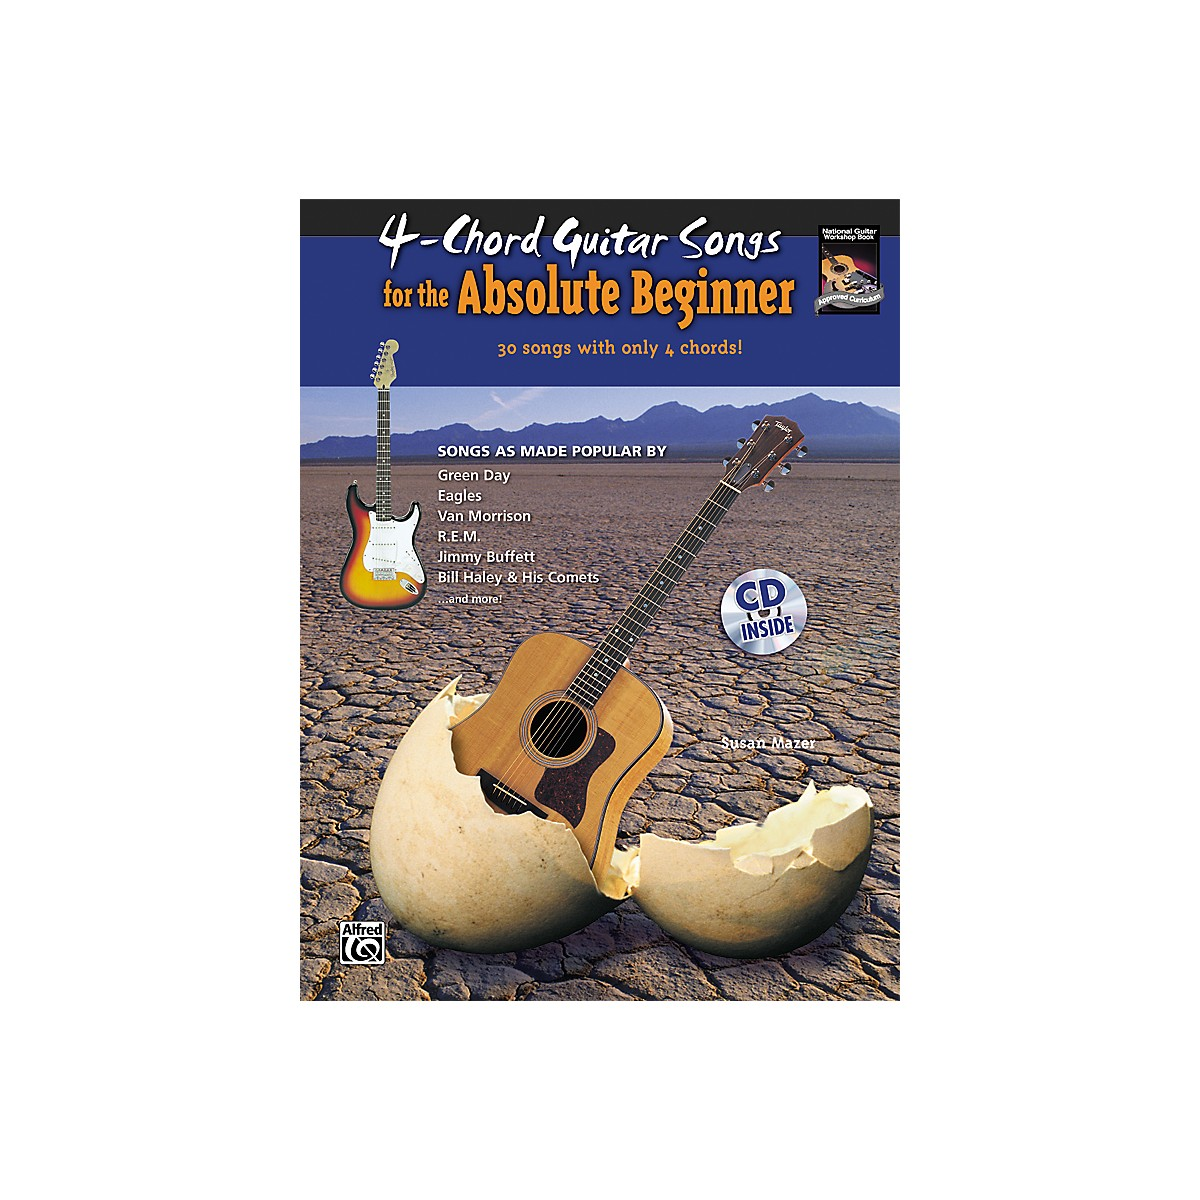 Alfred 4-Chord Guitar Songs for the Absolute Beginner Book & CD